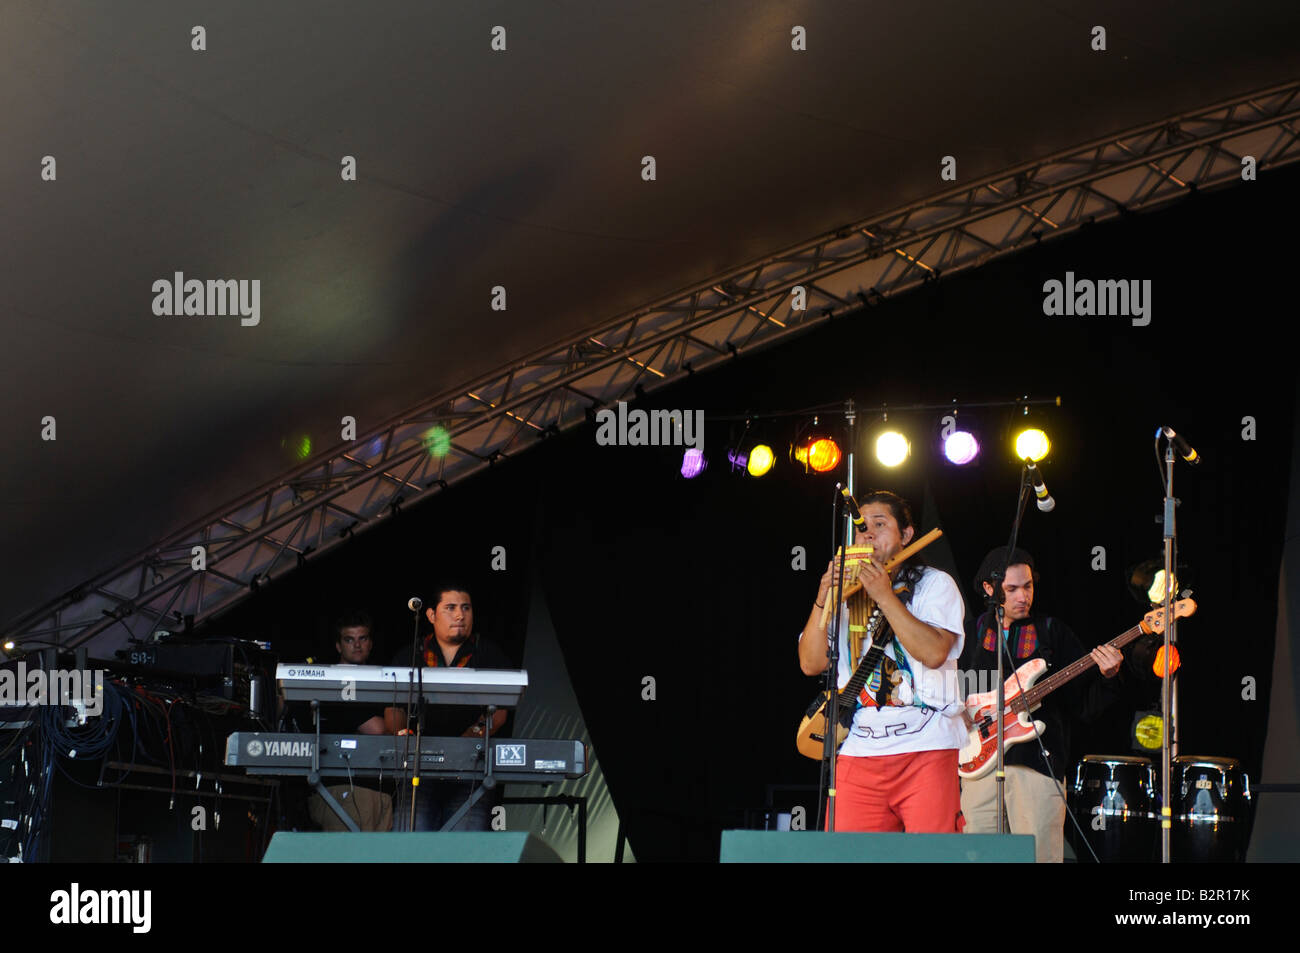 Latin American Carnival in London Kausary 7 launches band - Stock Image